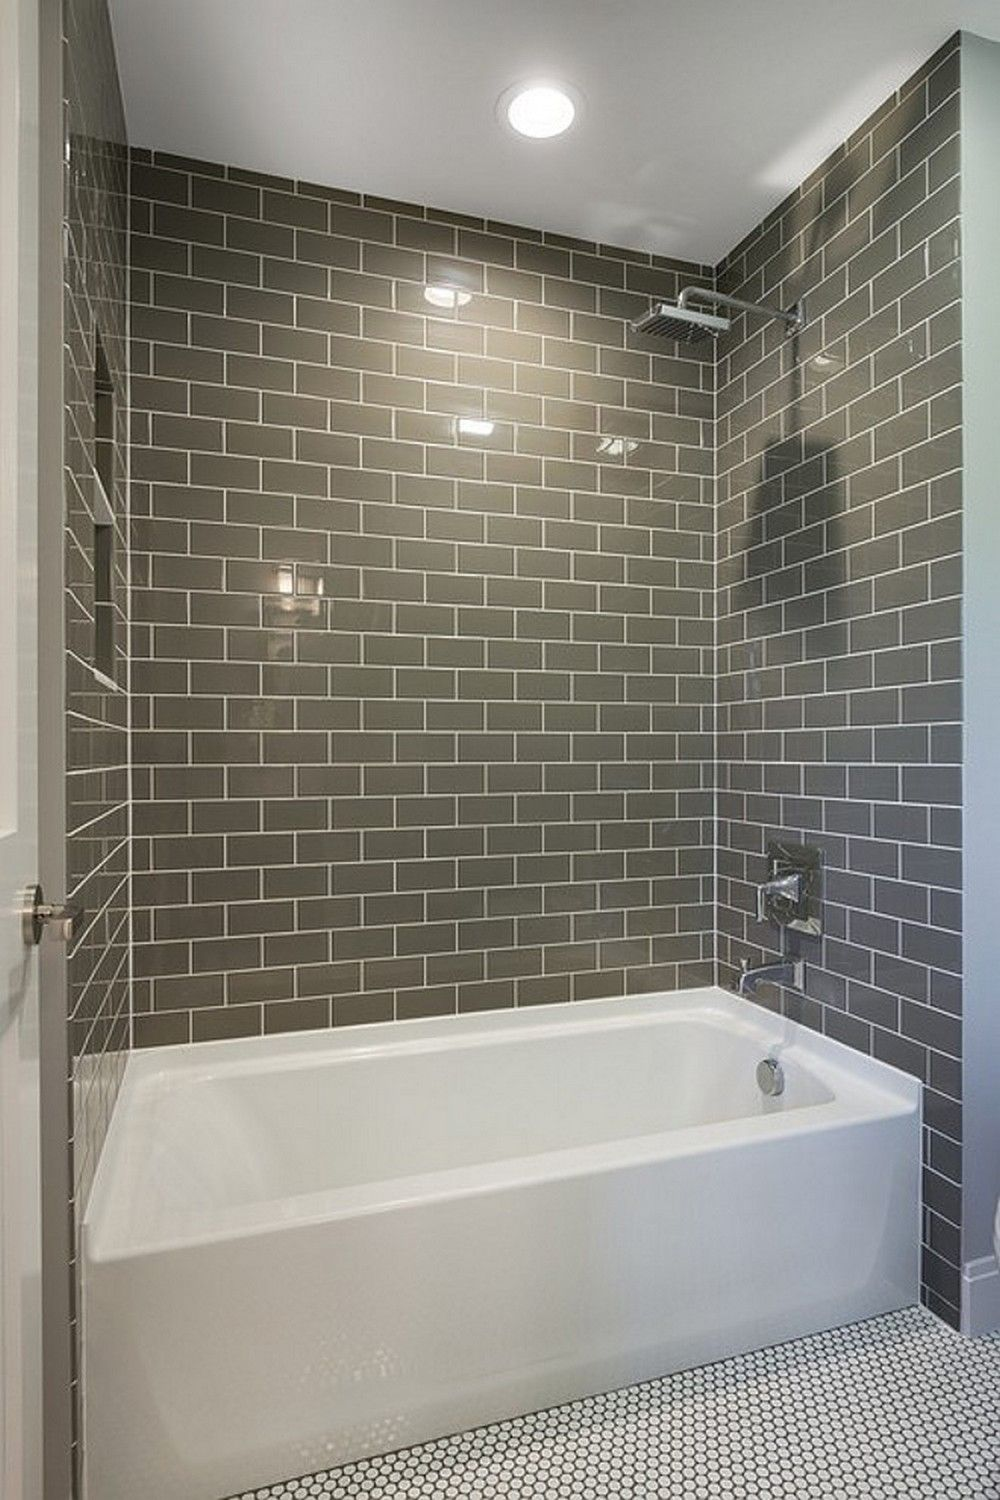 111 fresh subway tiles application for your bathroom | subway tiles